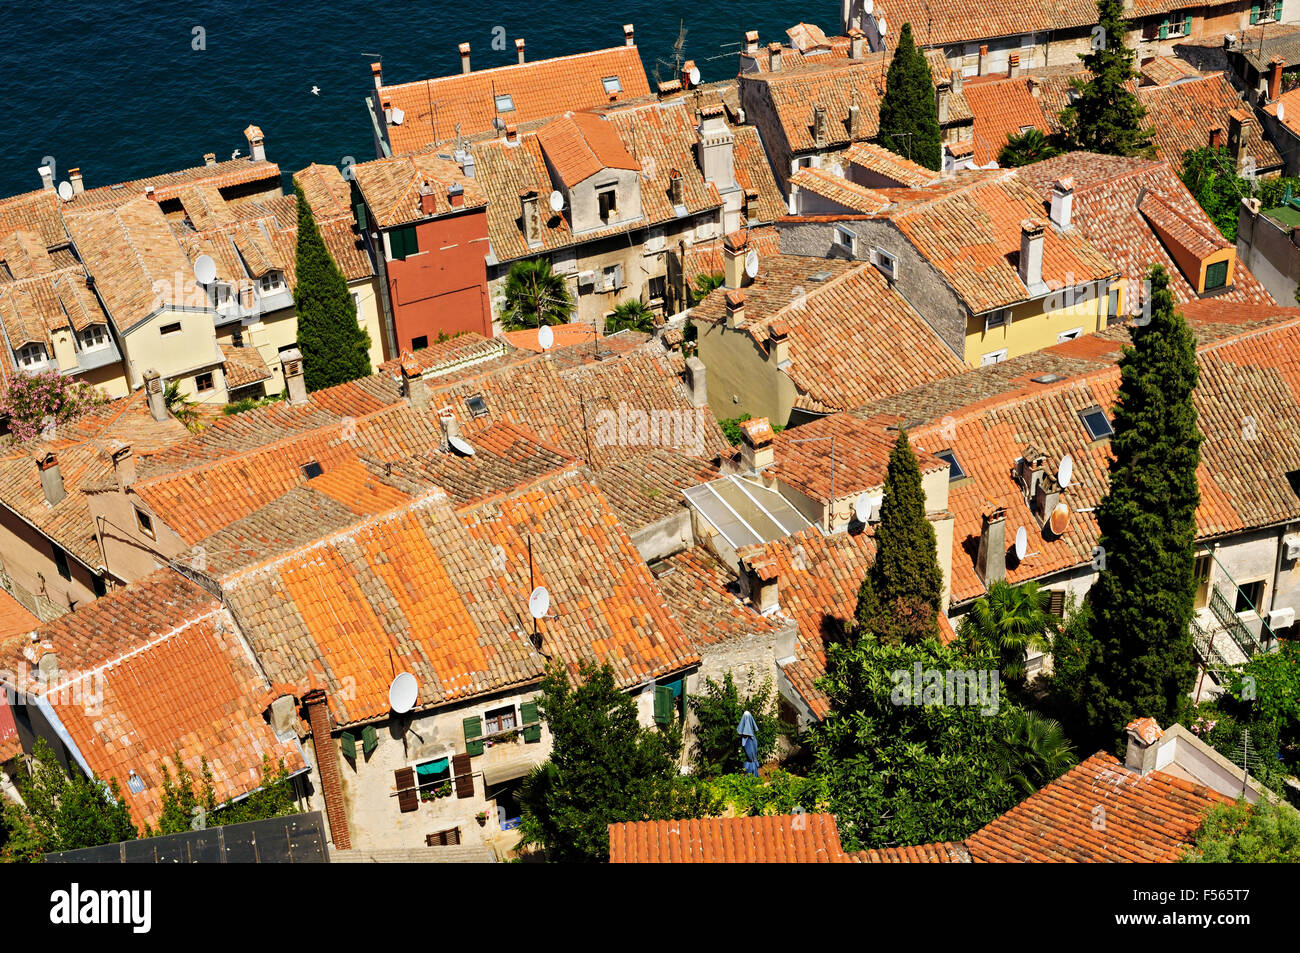 Roofs and chimneys in Rovinj, Istria, Croatia - Stock Image